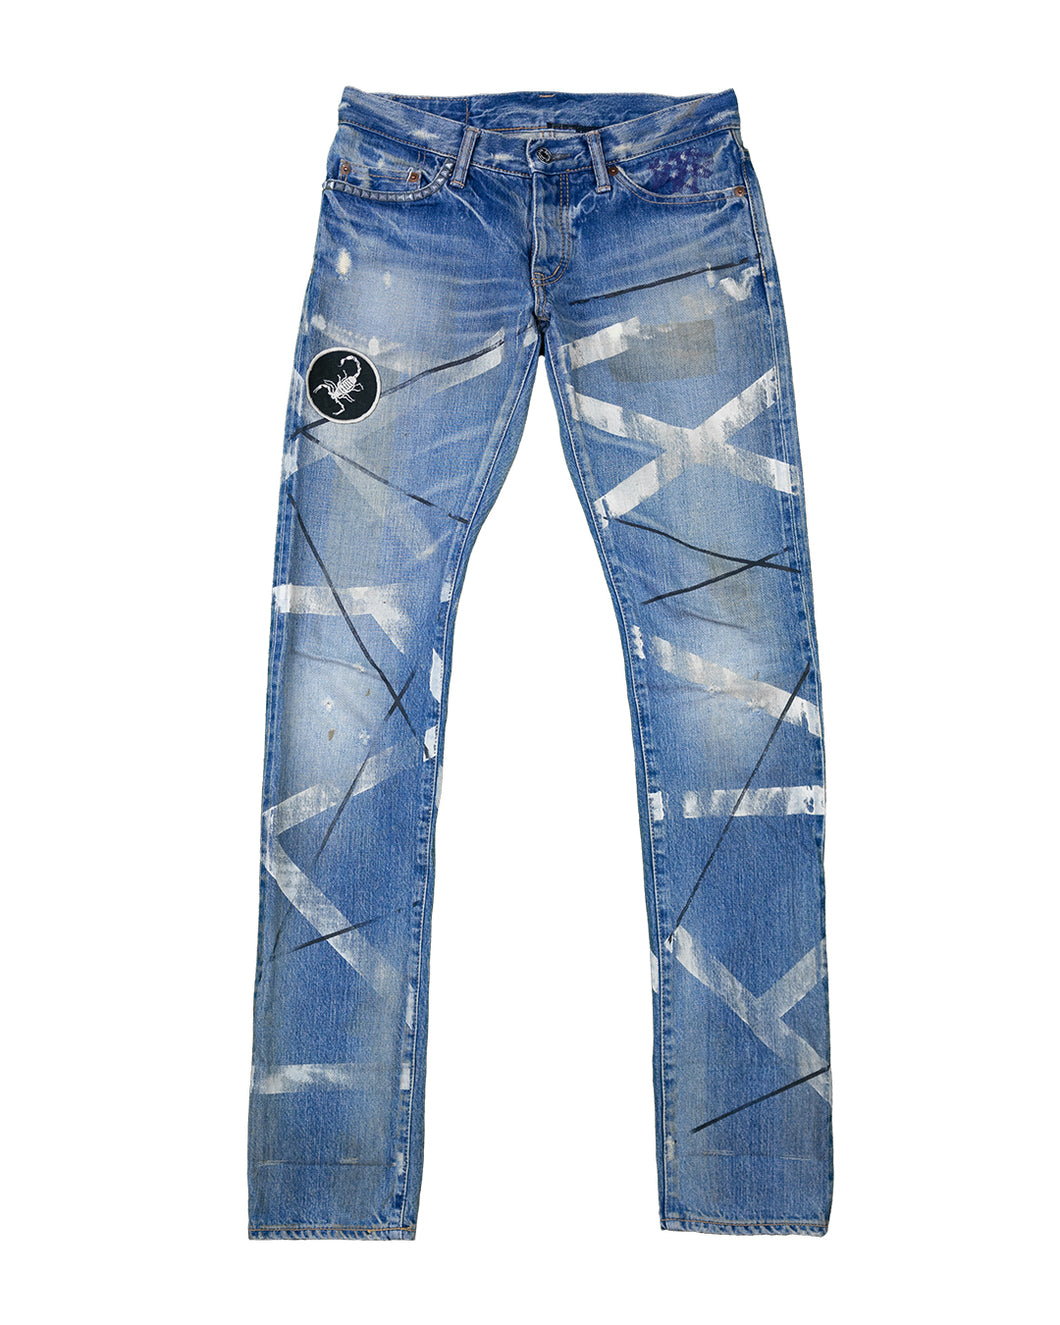 Hysteric Glamour paint striped jeans